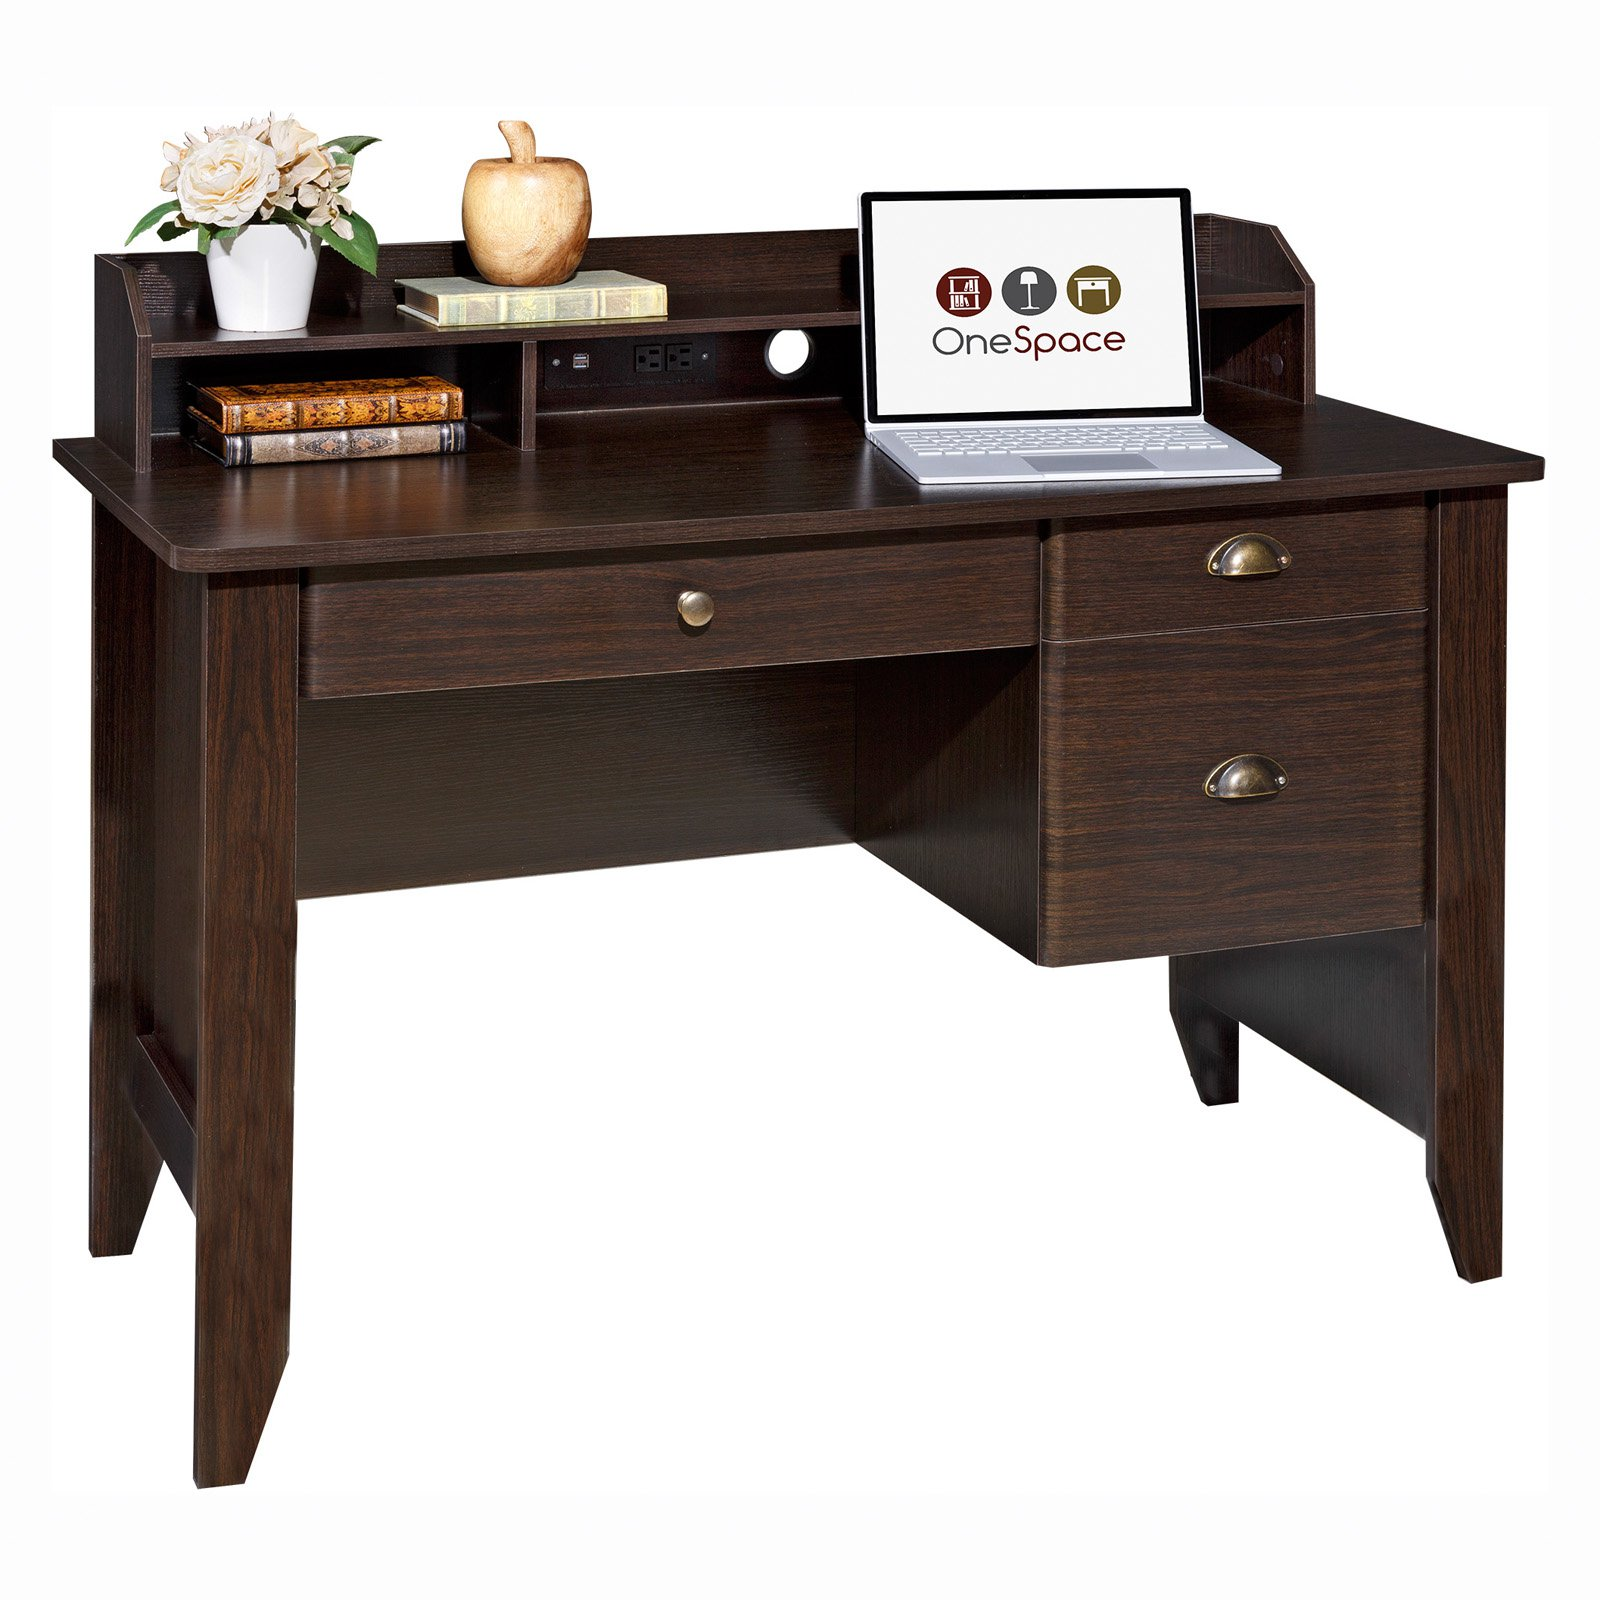 Comfort Products Executive Desk with Hutch and USB, Charger Hub